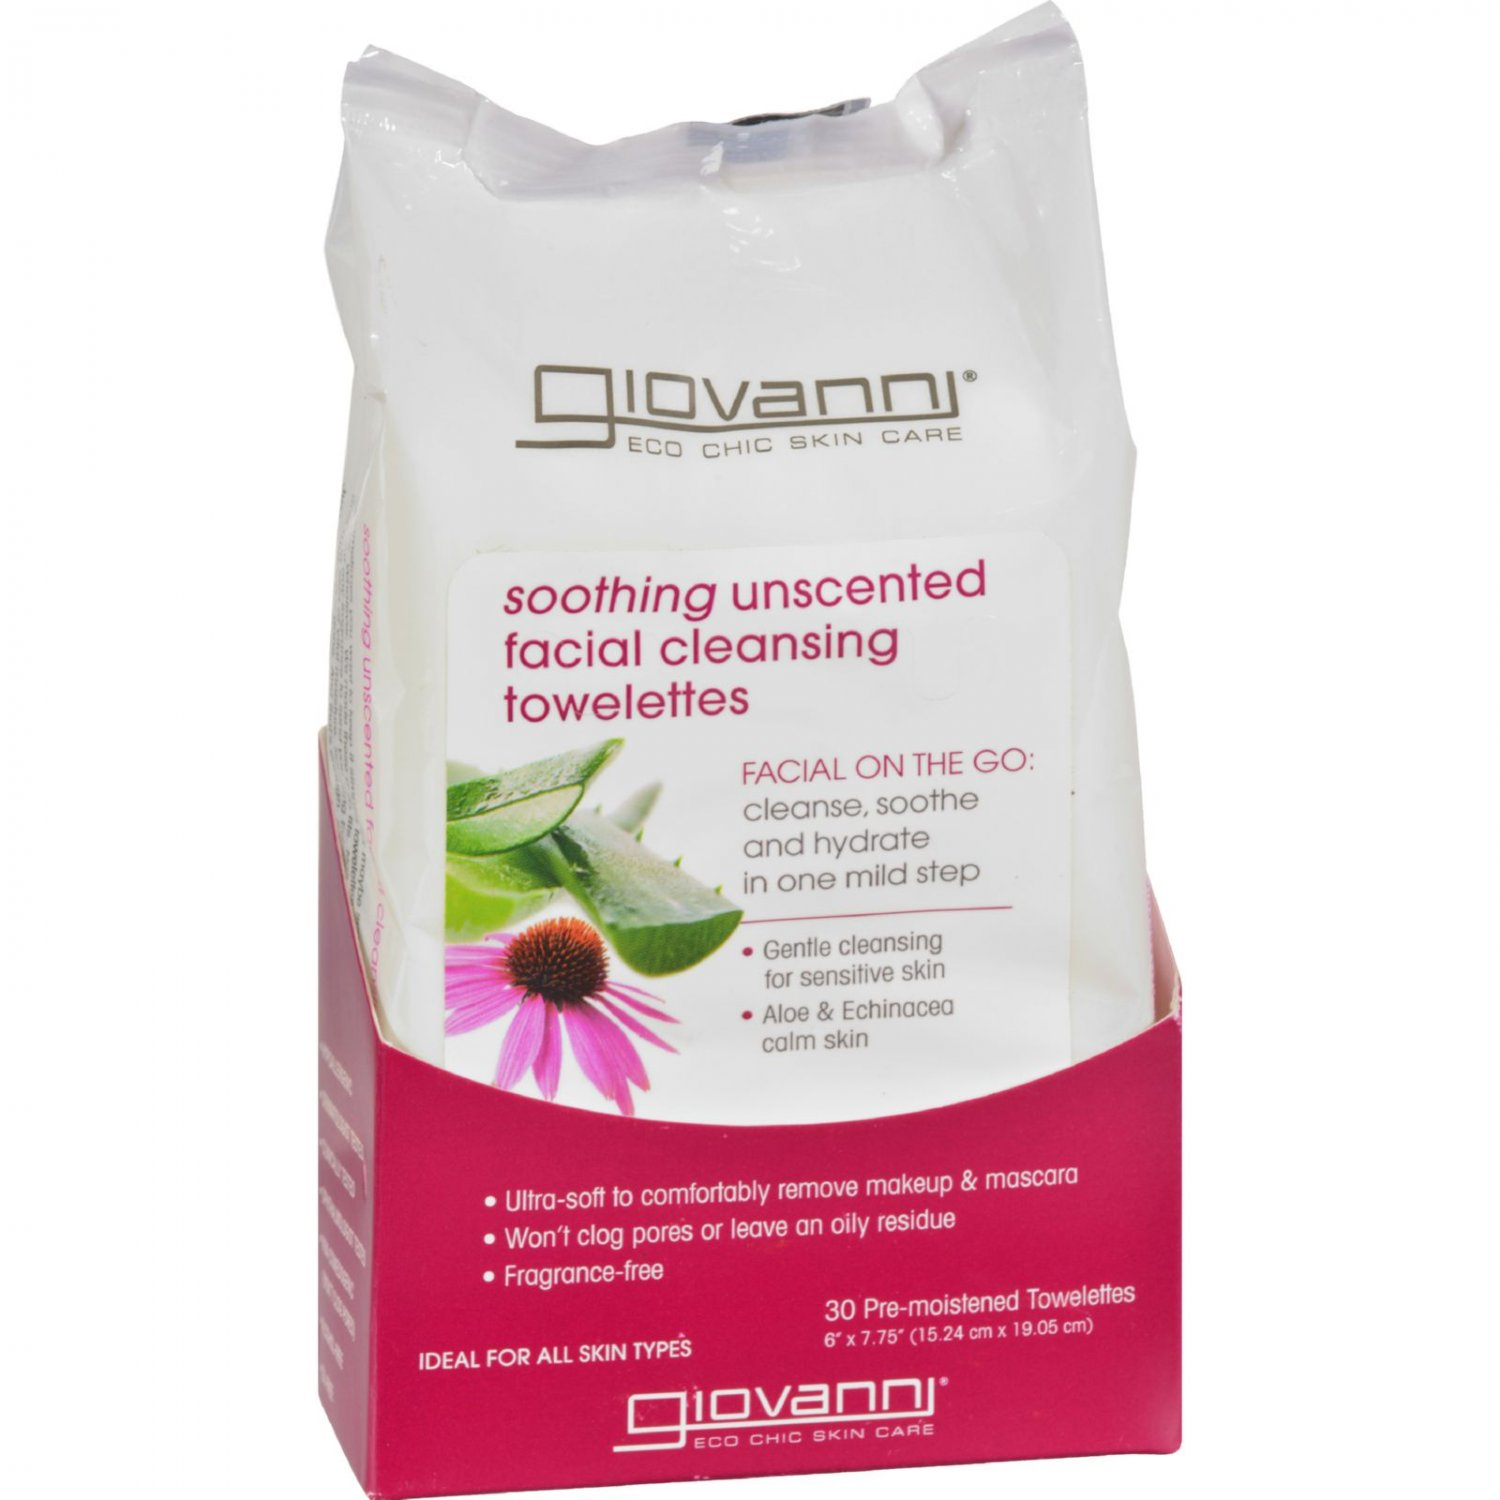 Giovanni Facial Cleansing Towelettes - Unscented - 30 Pre-moistened Towelettes